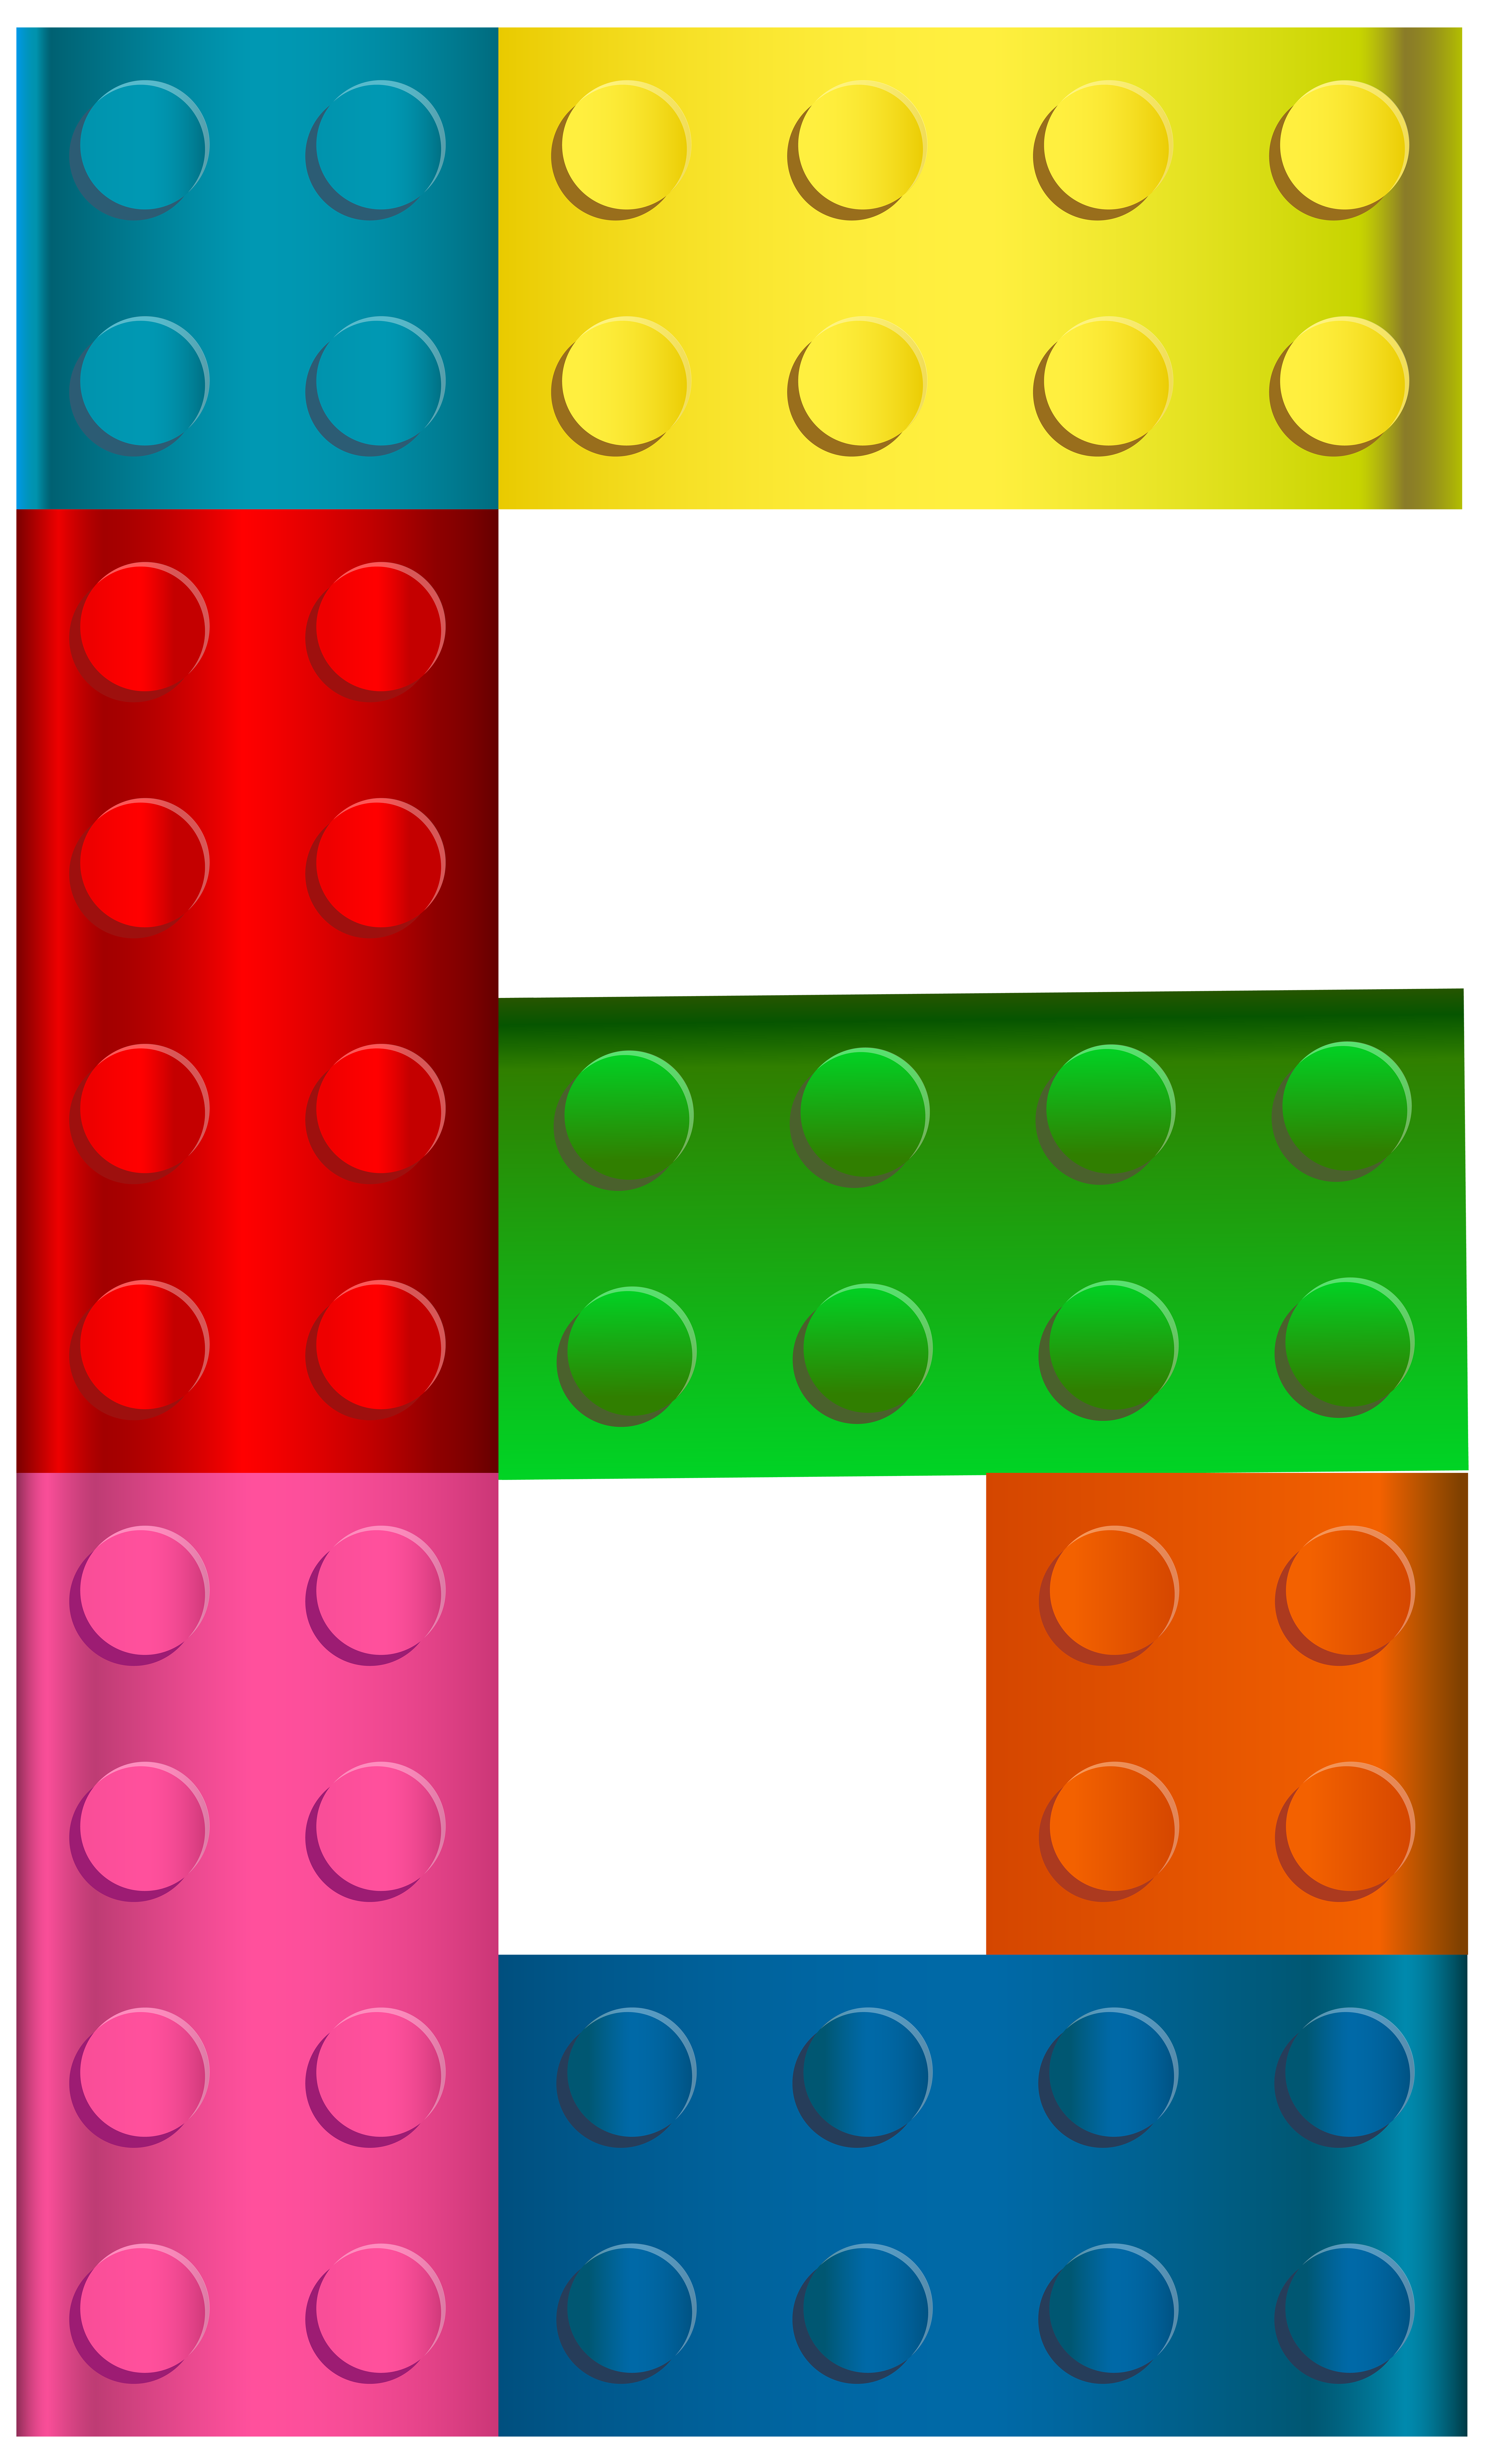 Lego clipart images svg library stock Lego Number Six PNG Transparent Clip Art Image | Gallery ... svg library stock